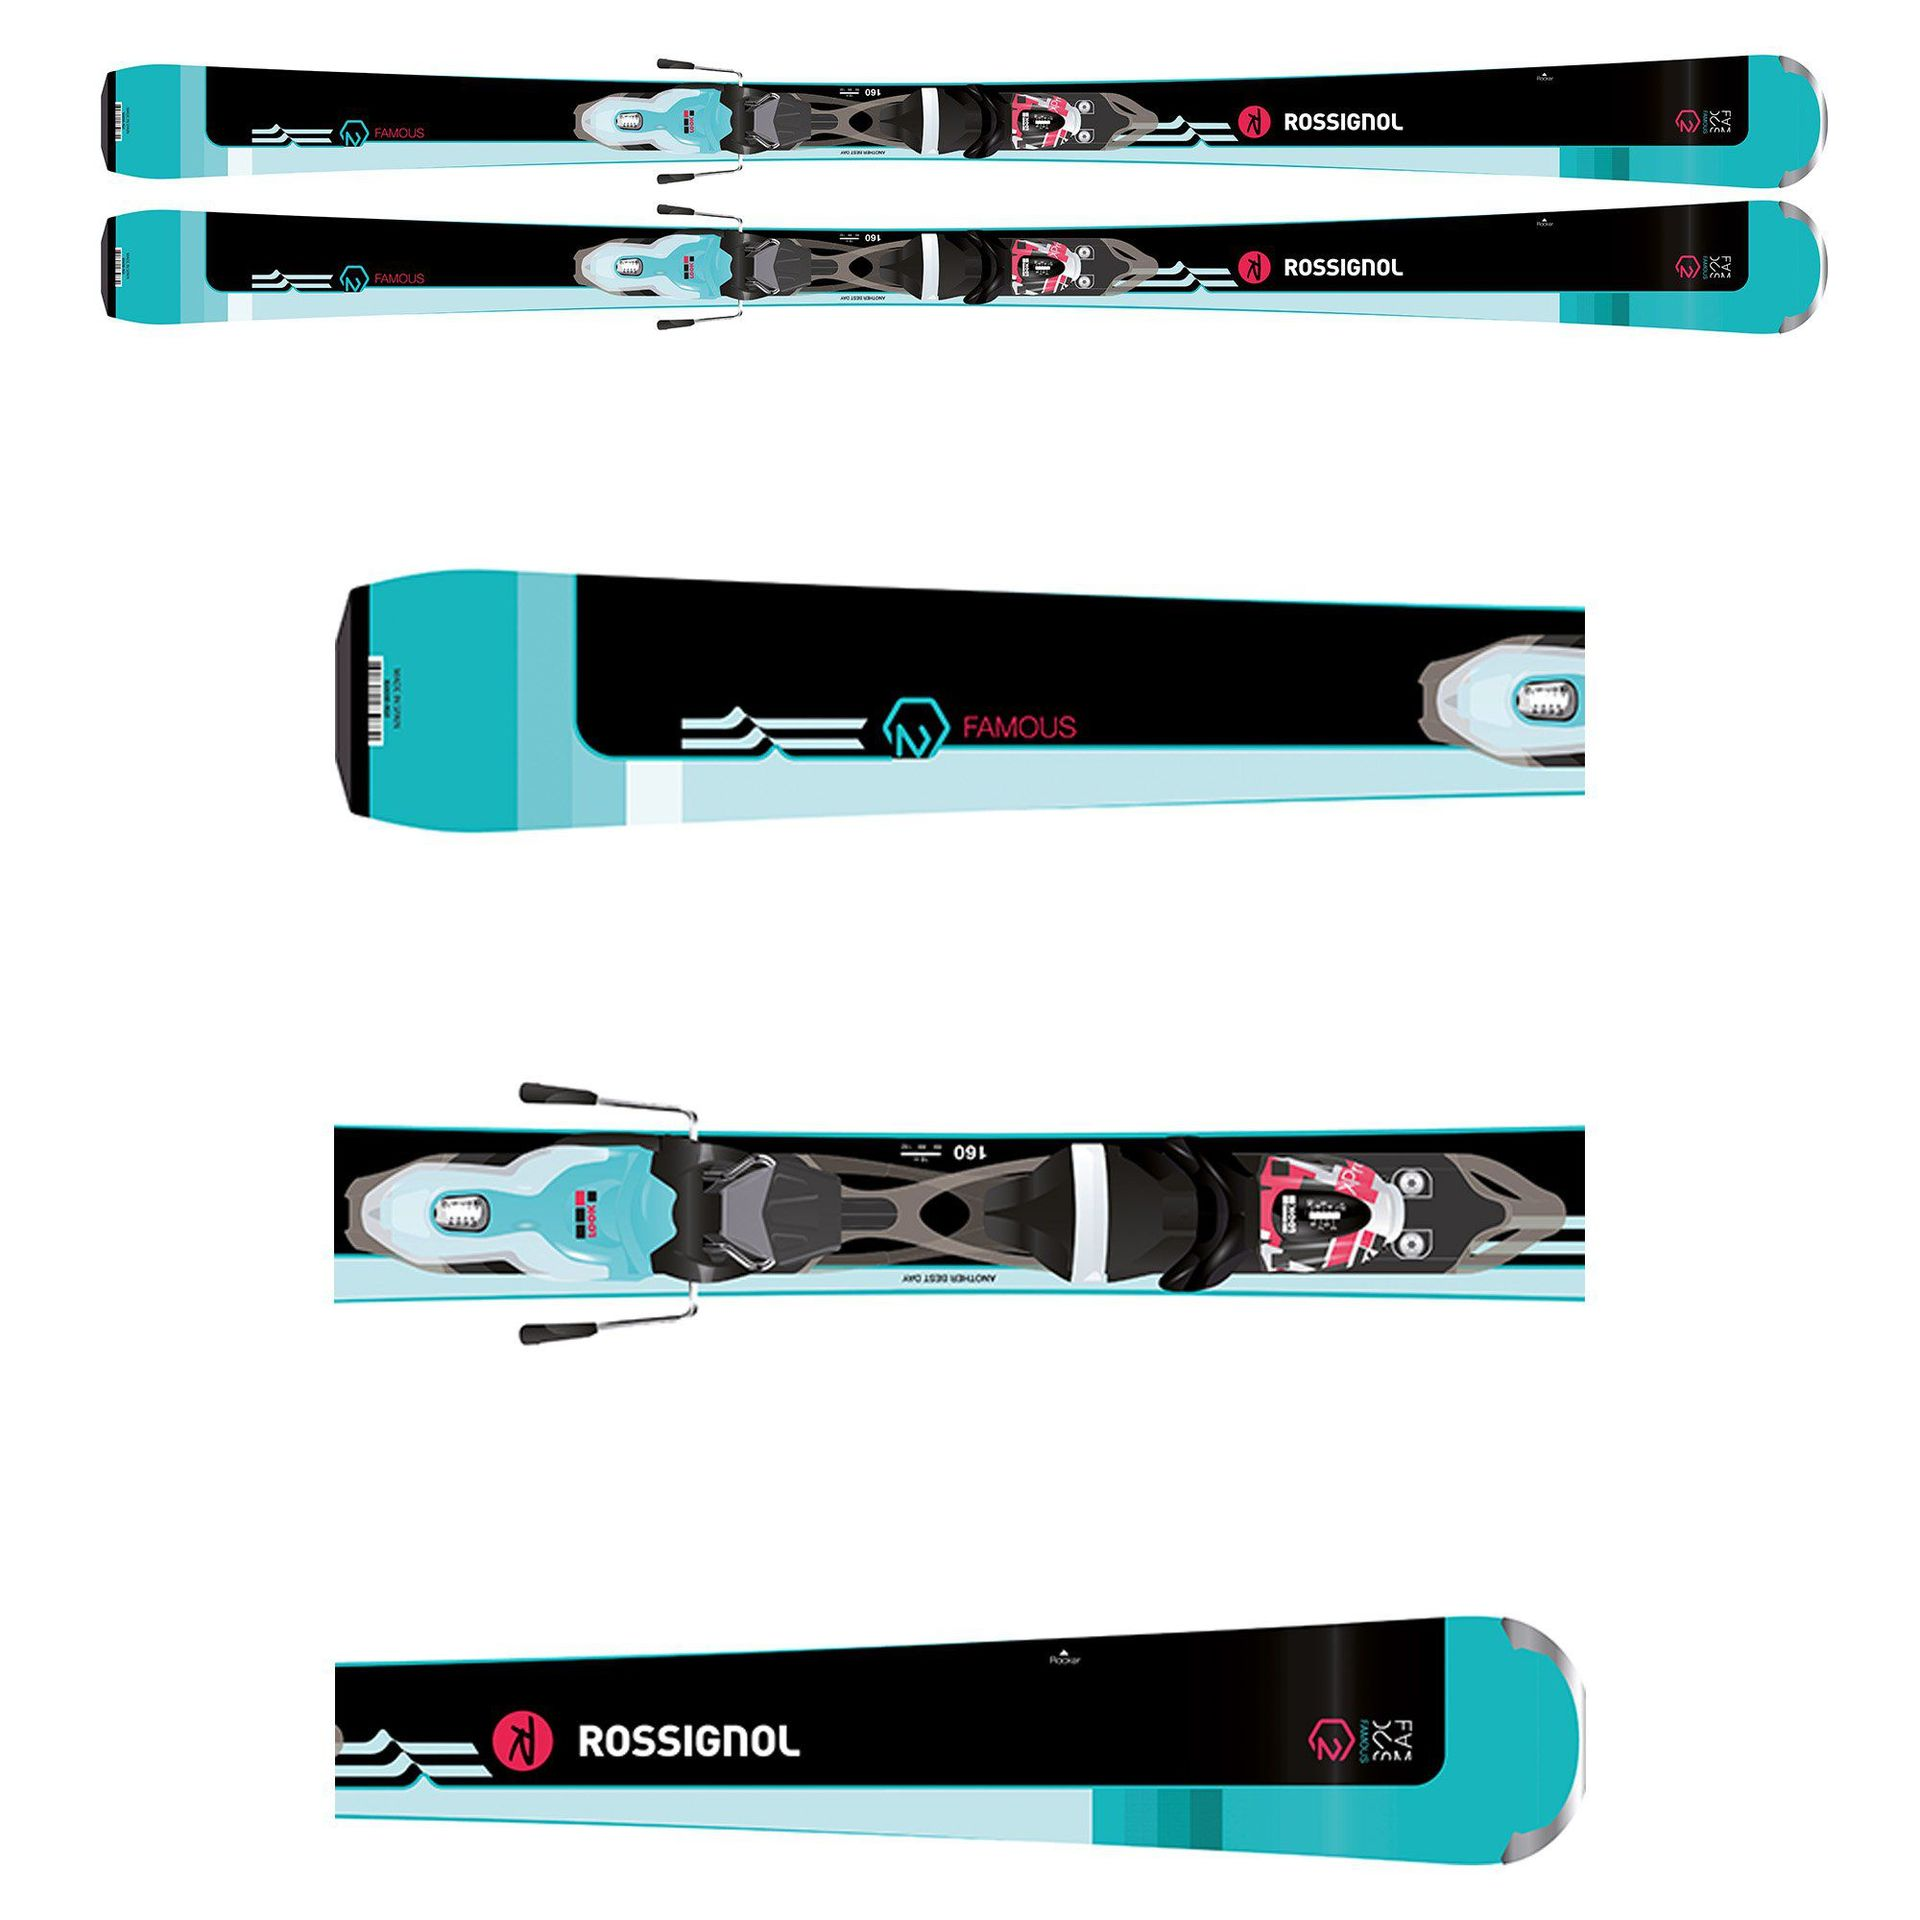 NARTY ROSSIGNOL FAMOUS 2 RRH06BK